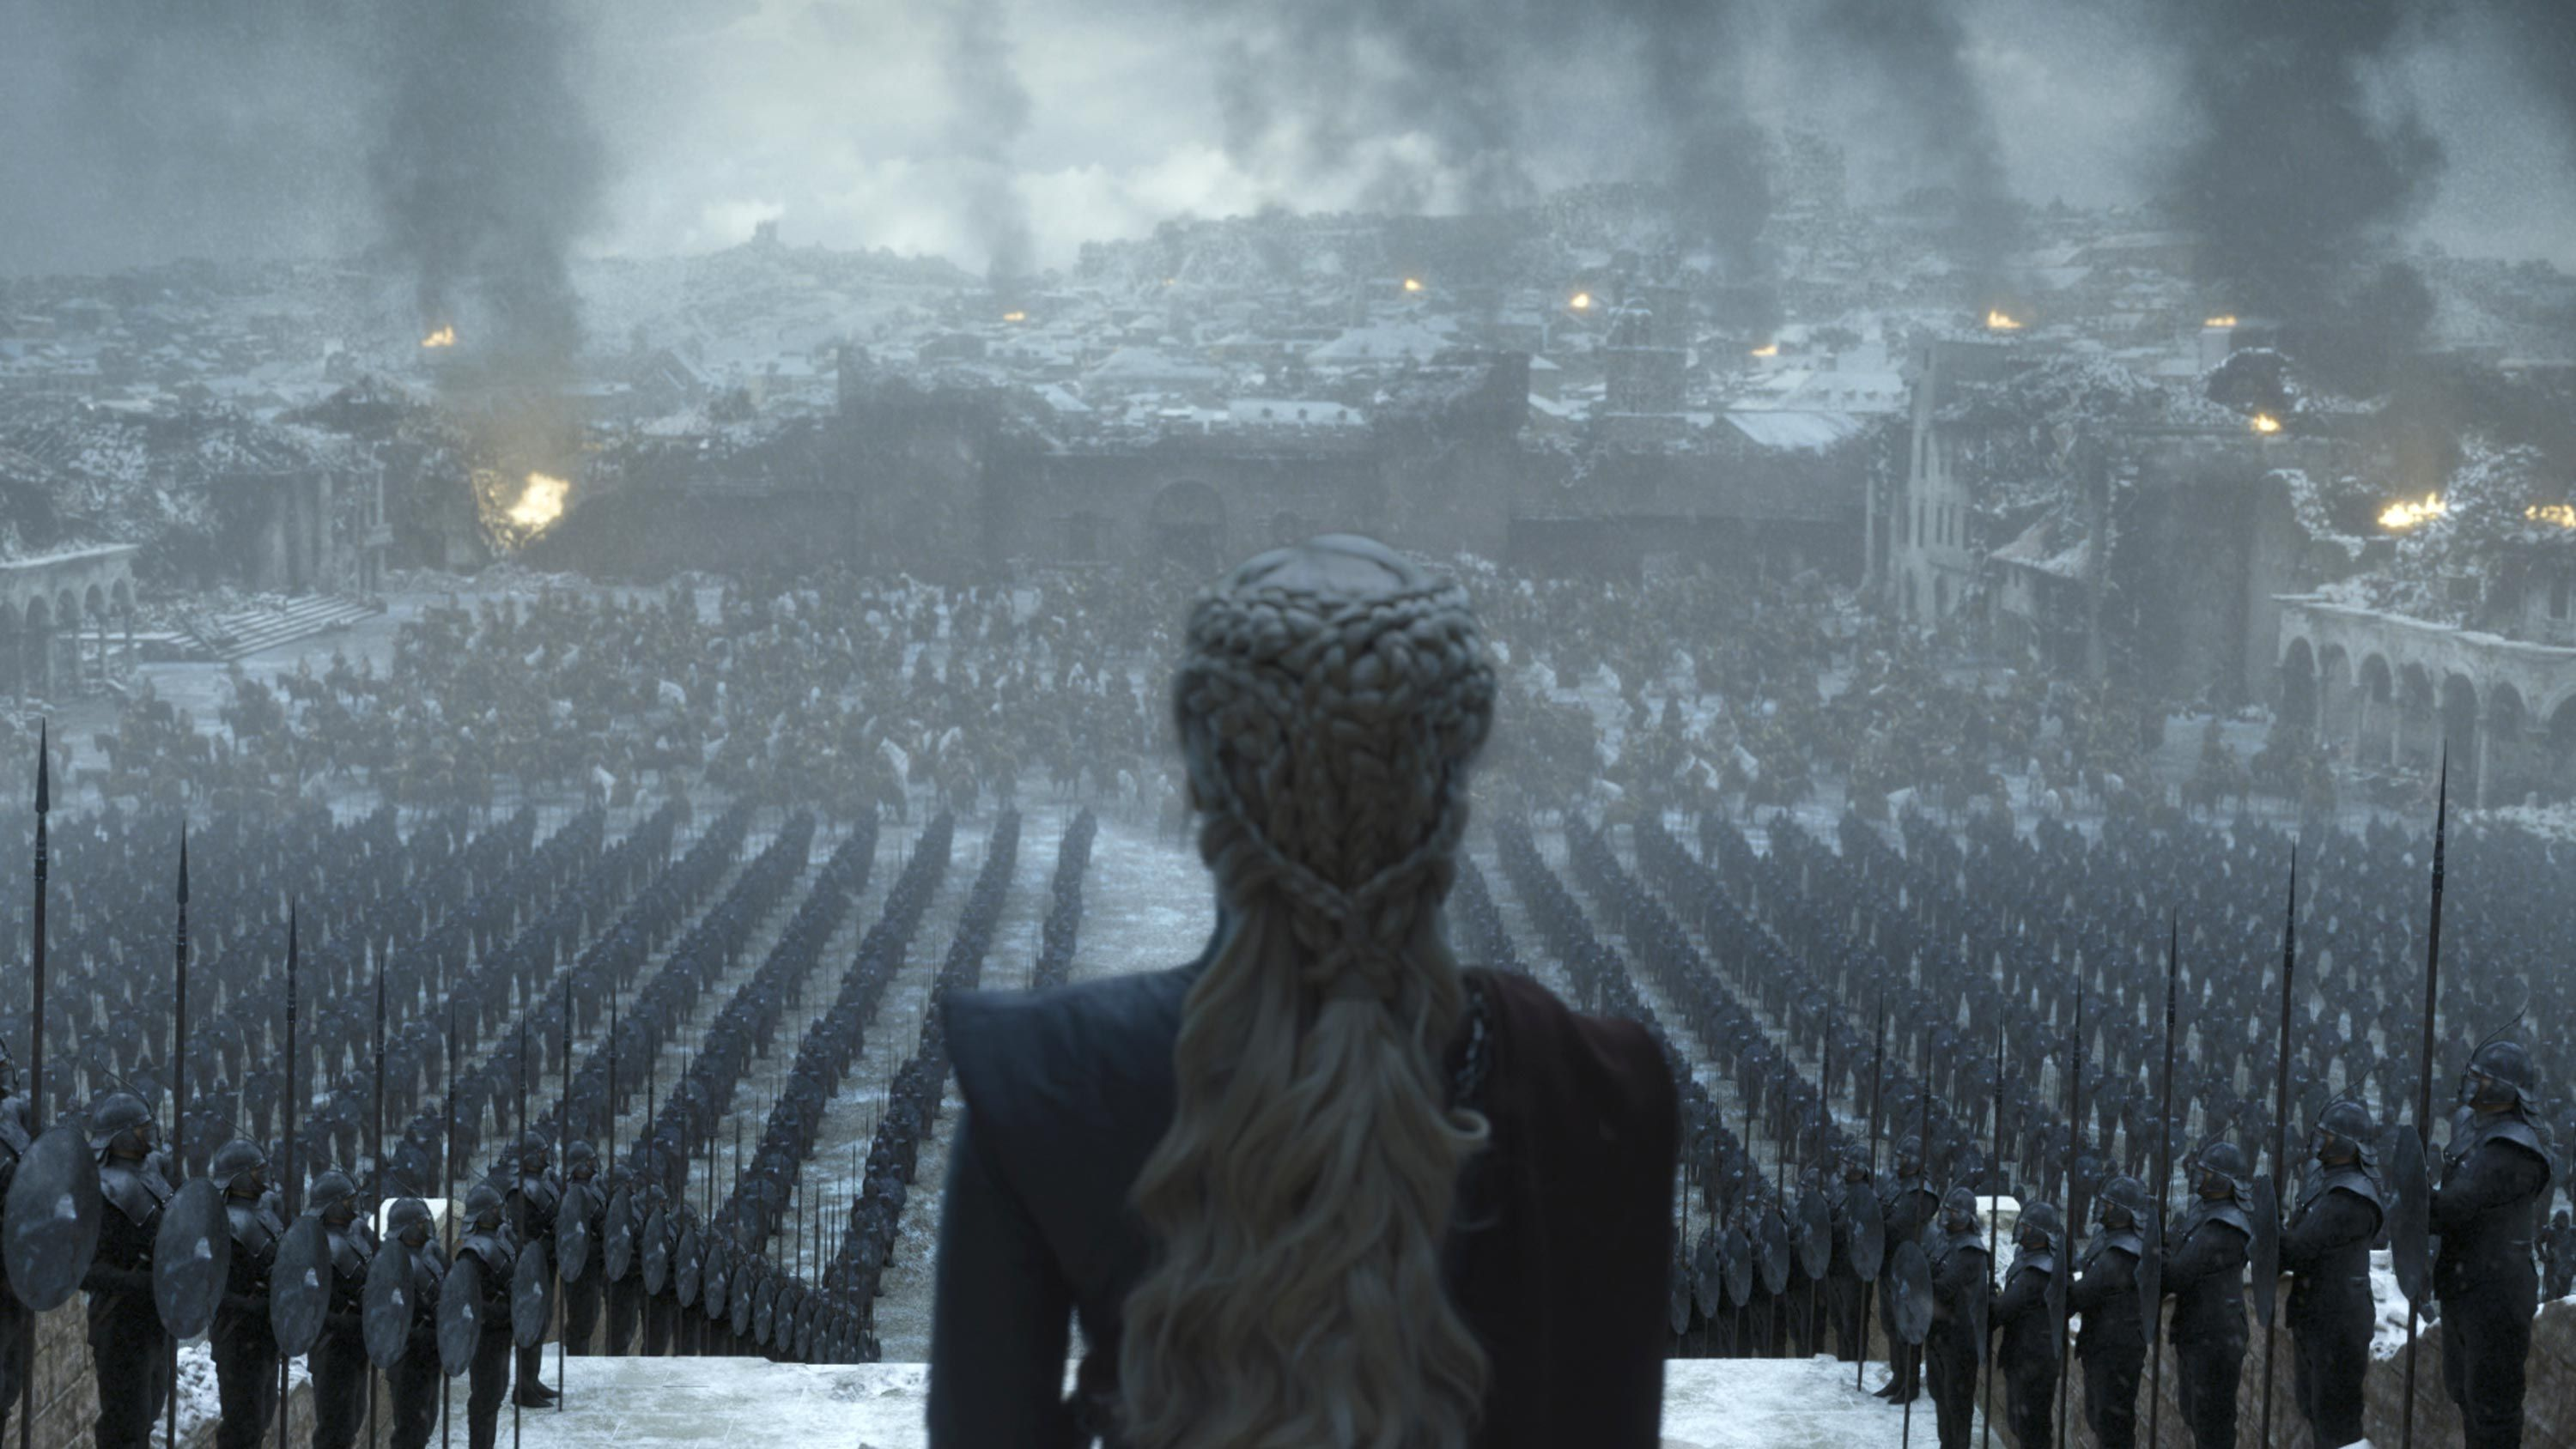 Best Twitter Reactions and Memes About the Game of Thrones Season 8 Finale